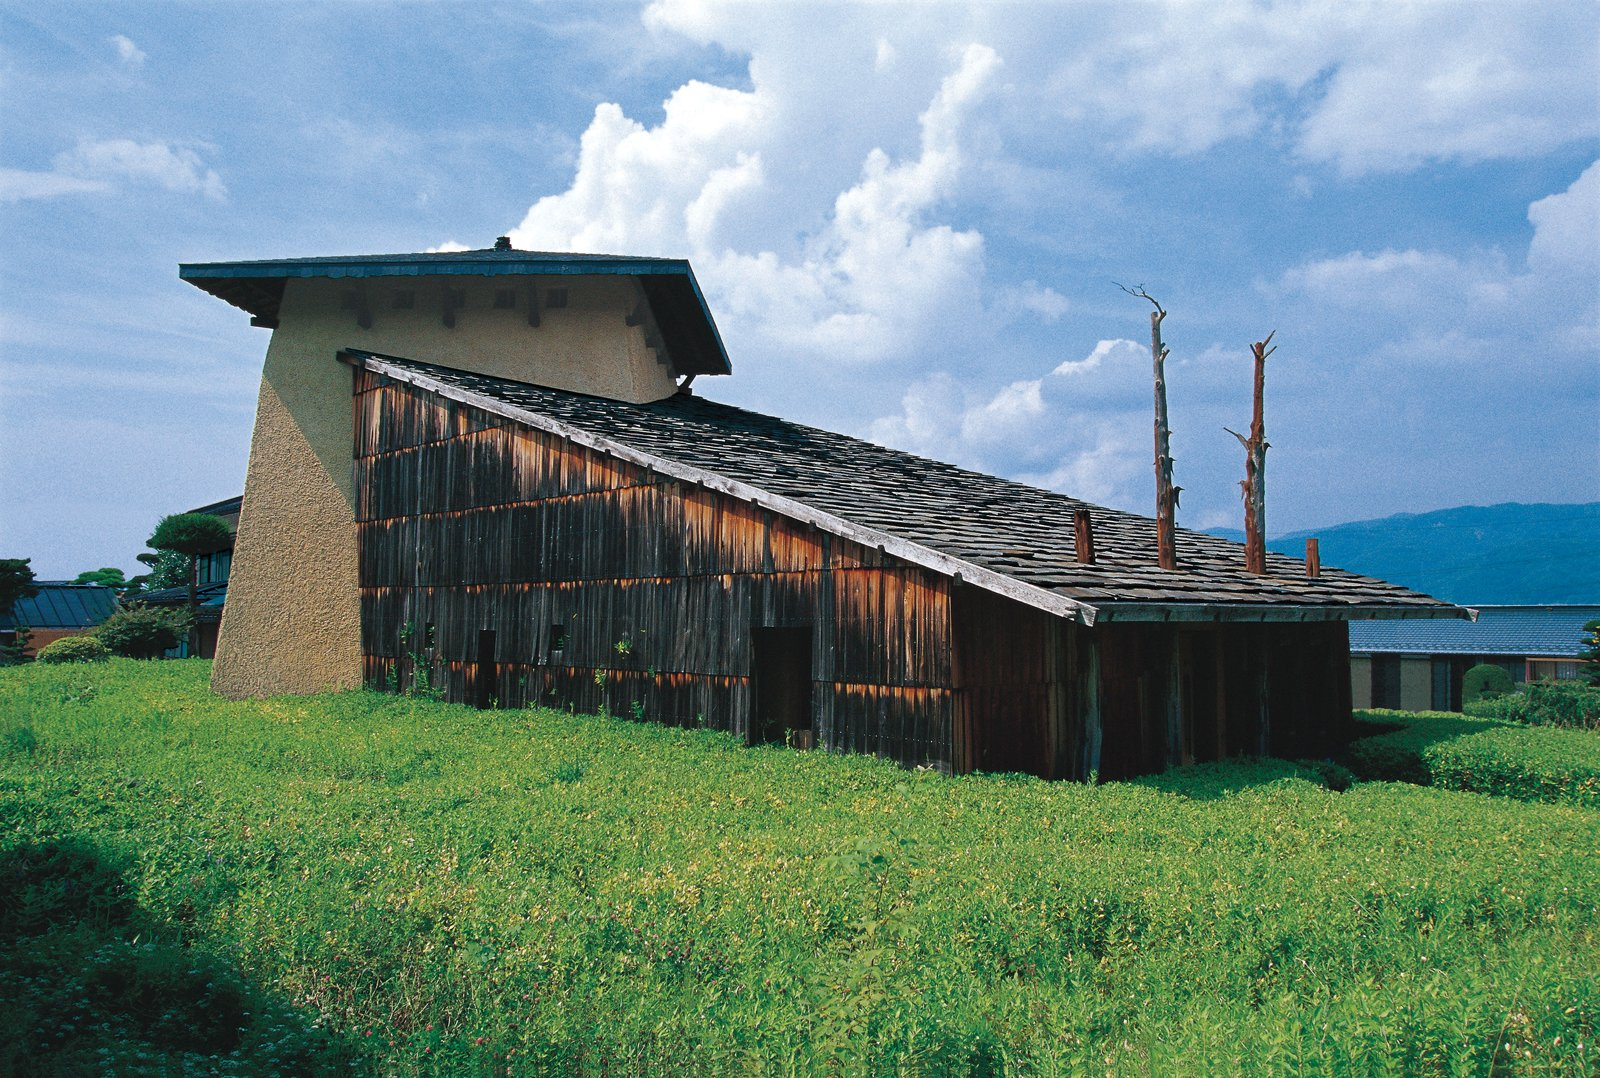 The 1991 Jinchokan Moriya Historical Museum, Fujimori's first commissioned building, signaled the themes that continue to drive his work: design in harmony with nature; raw, natural materials (wood, mud-and-mortar walls); and a Neolithic-inspired architectural style.  Photo 3 of 23 in Terunobu Fujimori